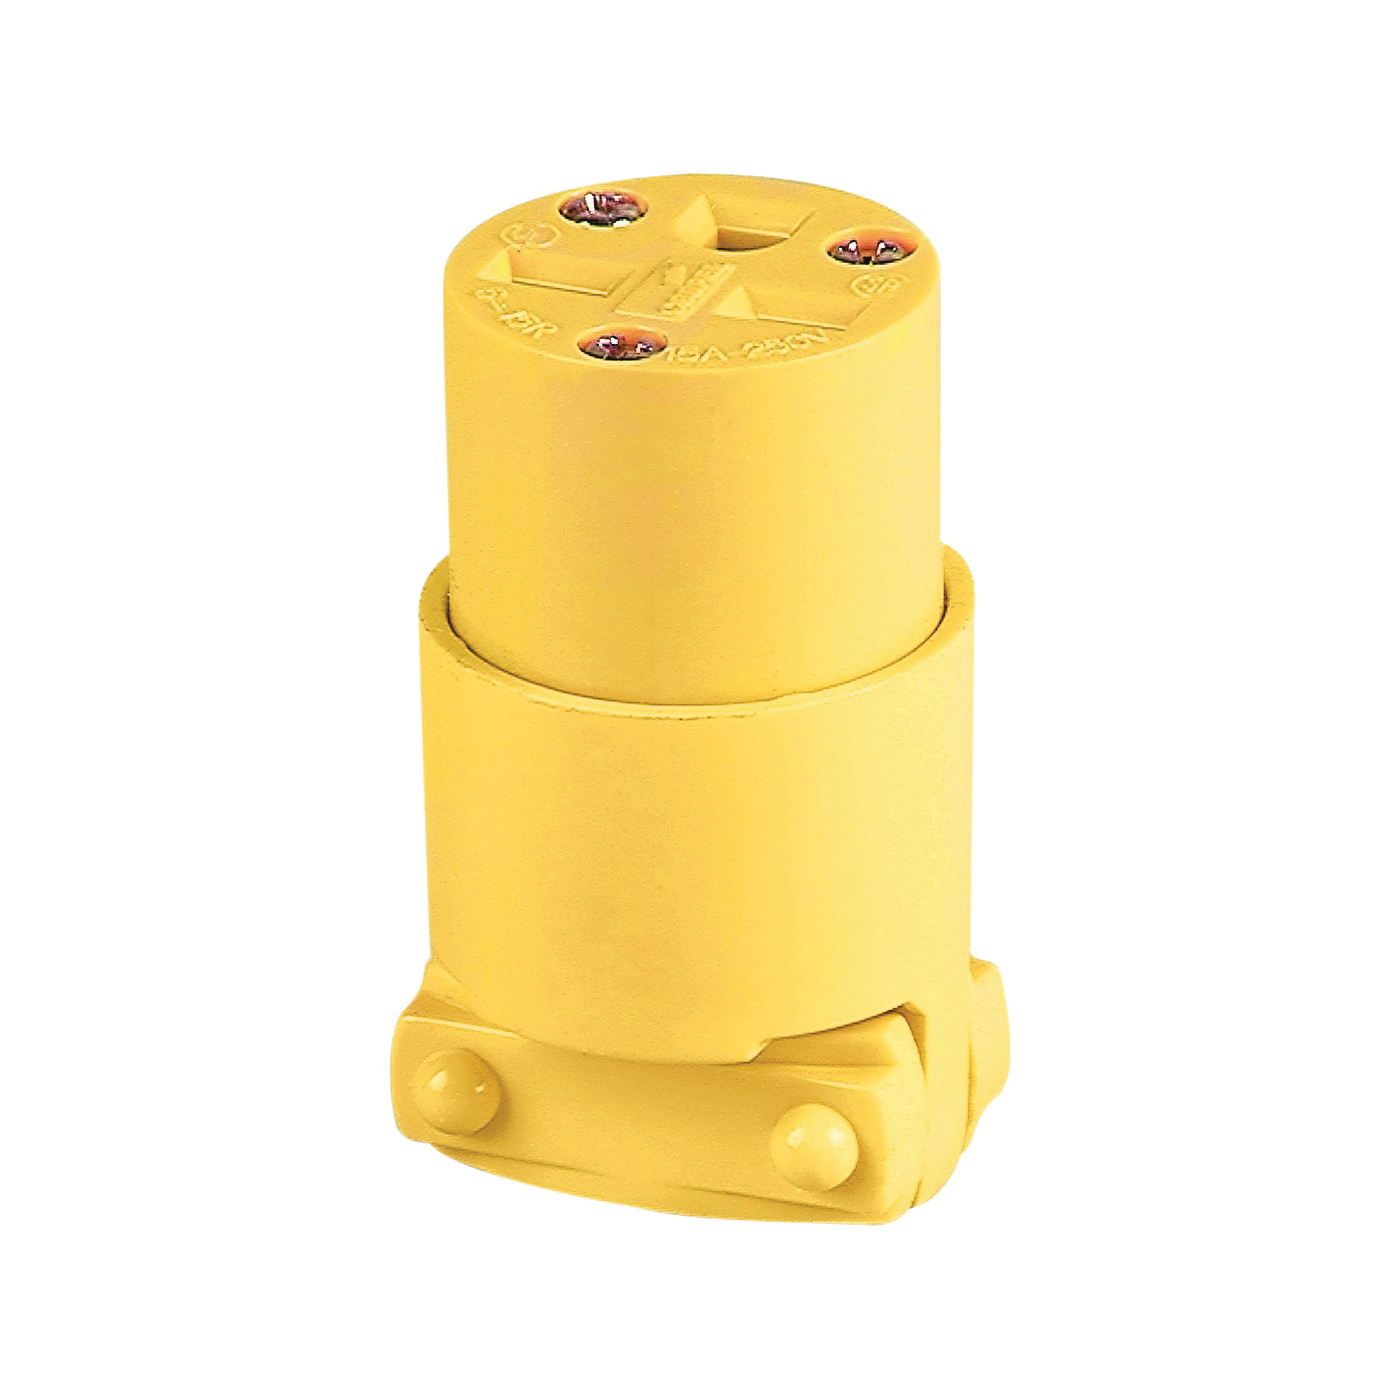 Picture of Eaton Cooper Wiring 4227-BOX Electrical Connector, 2-Pole, 15 A, 250 V, NEMA: 6-15, Yellow